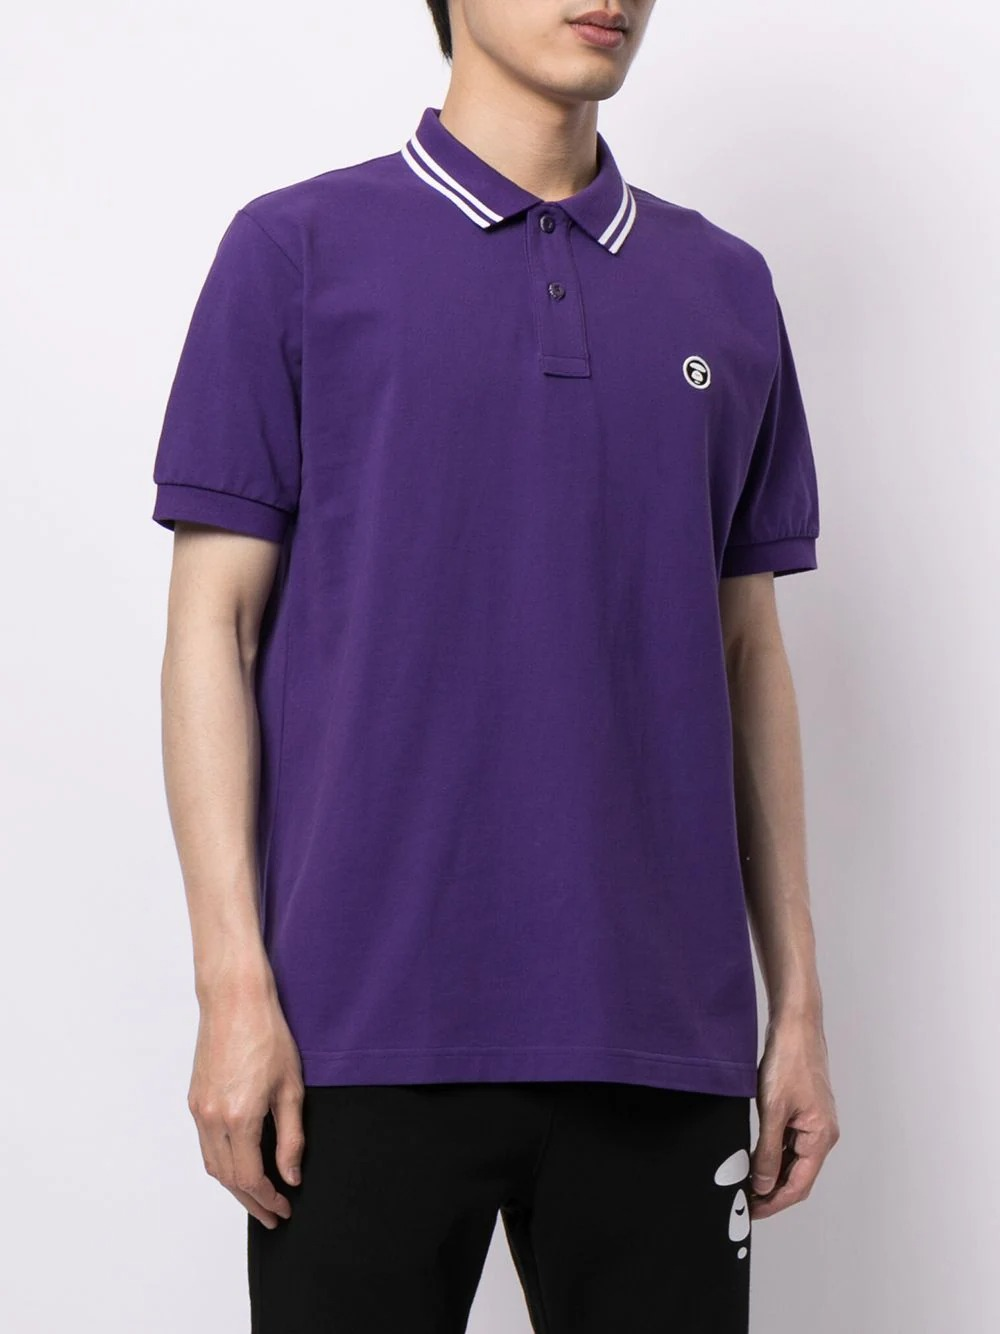 AAPE-by-A-Bathing-Ape-Logo-Embroidered-Polo-Shirt